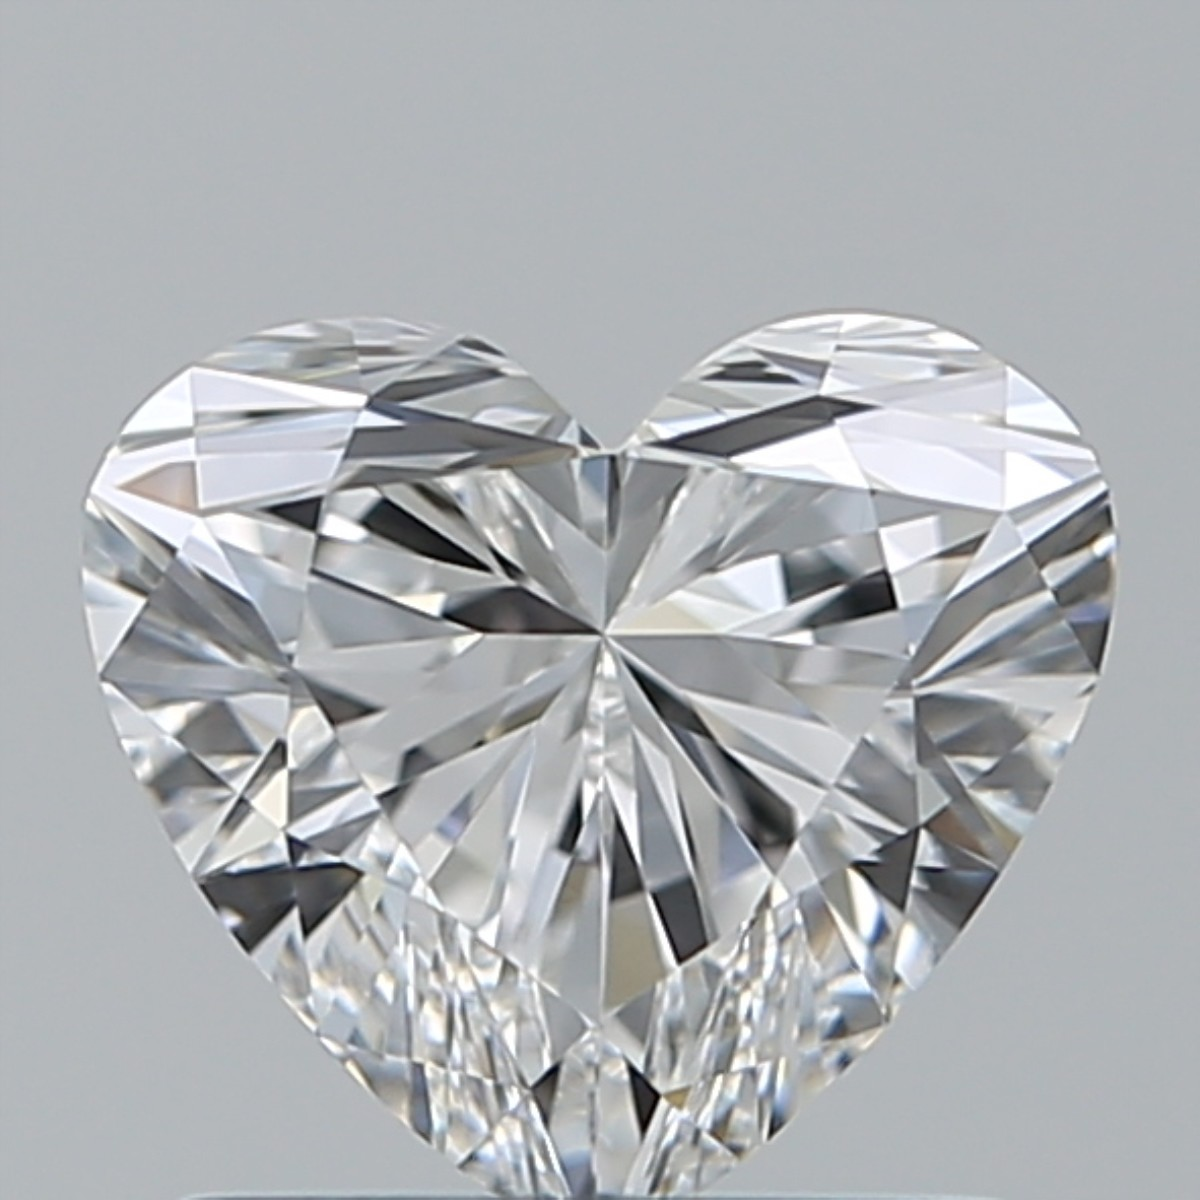 0.90 Carat Heart Diamond (E/IF)